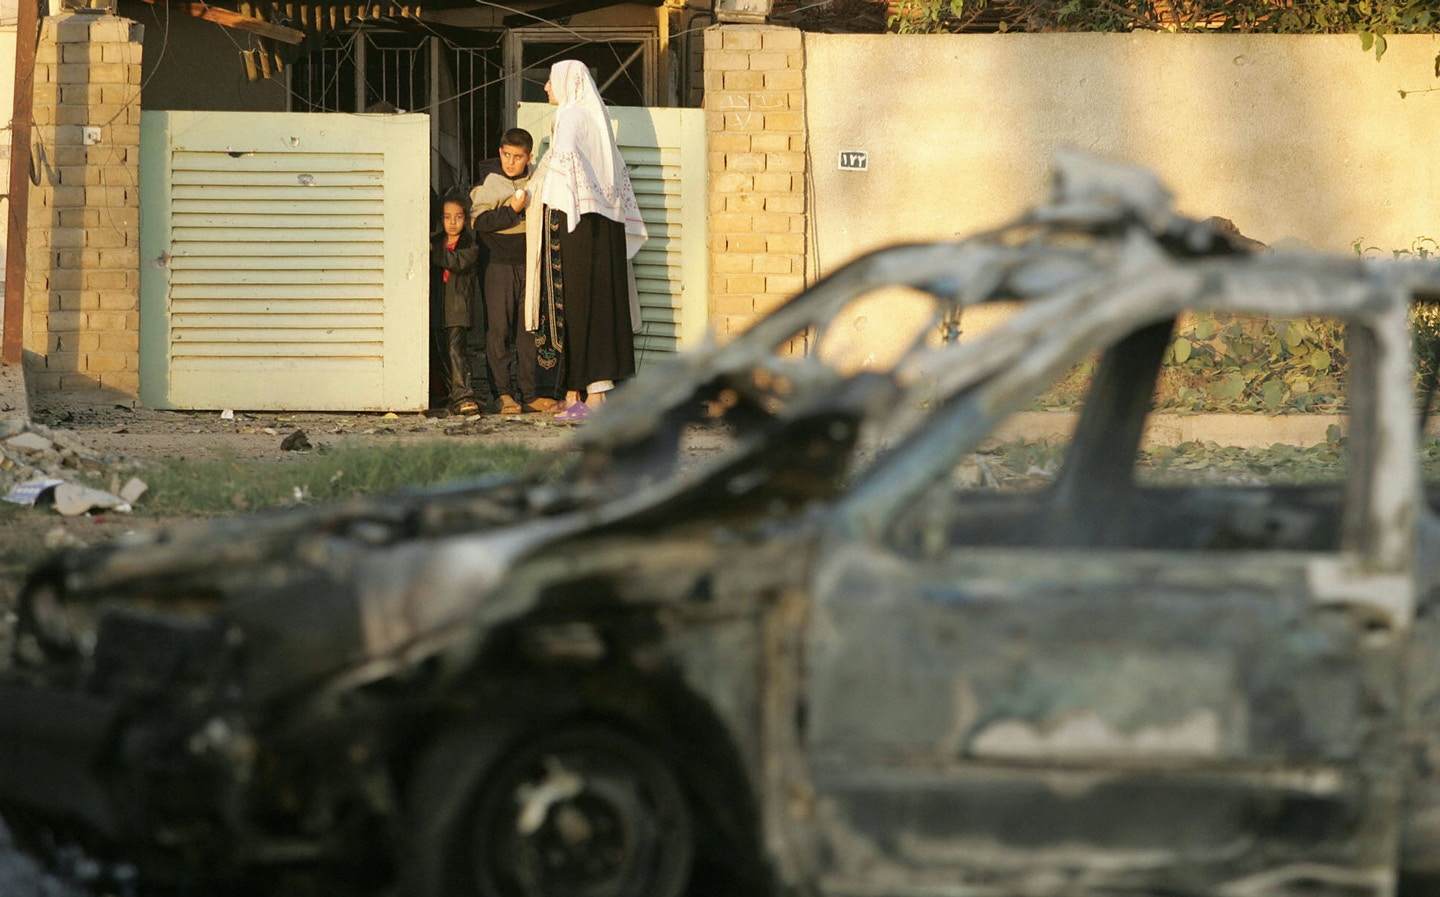 BAGHDAD, IRAQ:  An Iraqi family looks out of the front gate of their home following a car bomb 19 November 2004, in Baghdad. Three people were killed, a policeman and two civilians, and 10 others wounded when a suicide car bomb exploded in Baghdad, police said. AFP PHOTO/MARWAN NAAMANI  (Photo credit should read MARWAN NAAMANI/AFP/Getty Images)